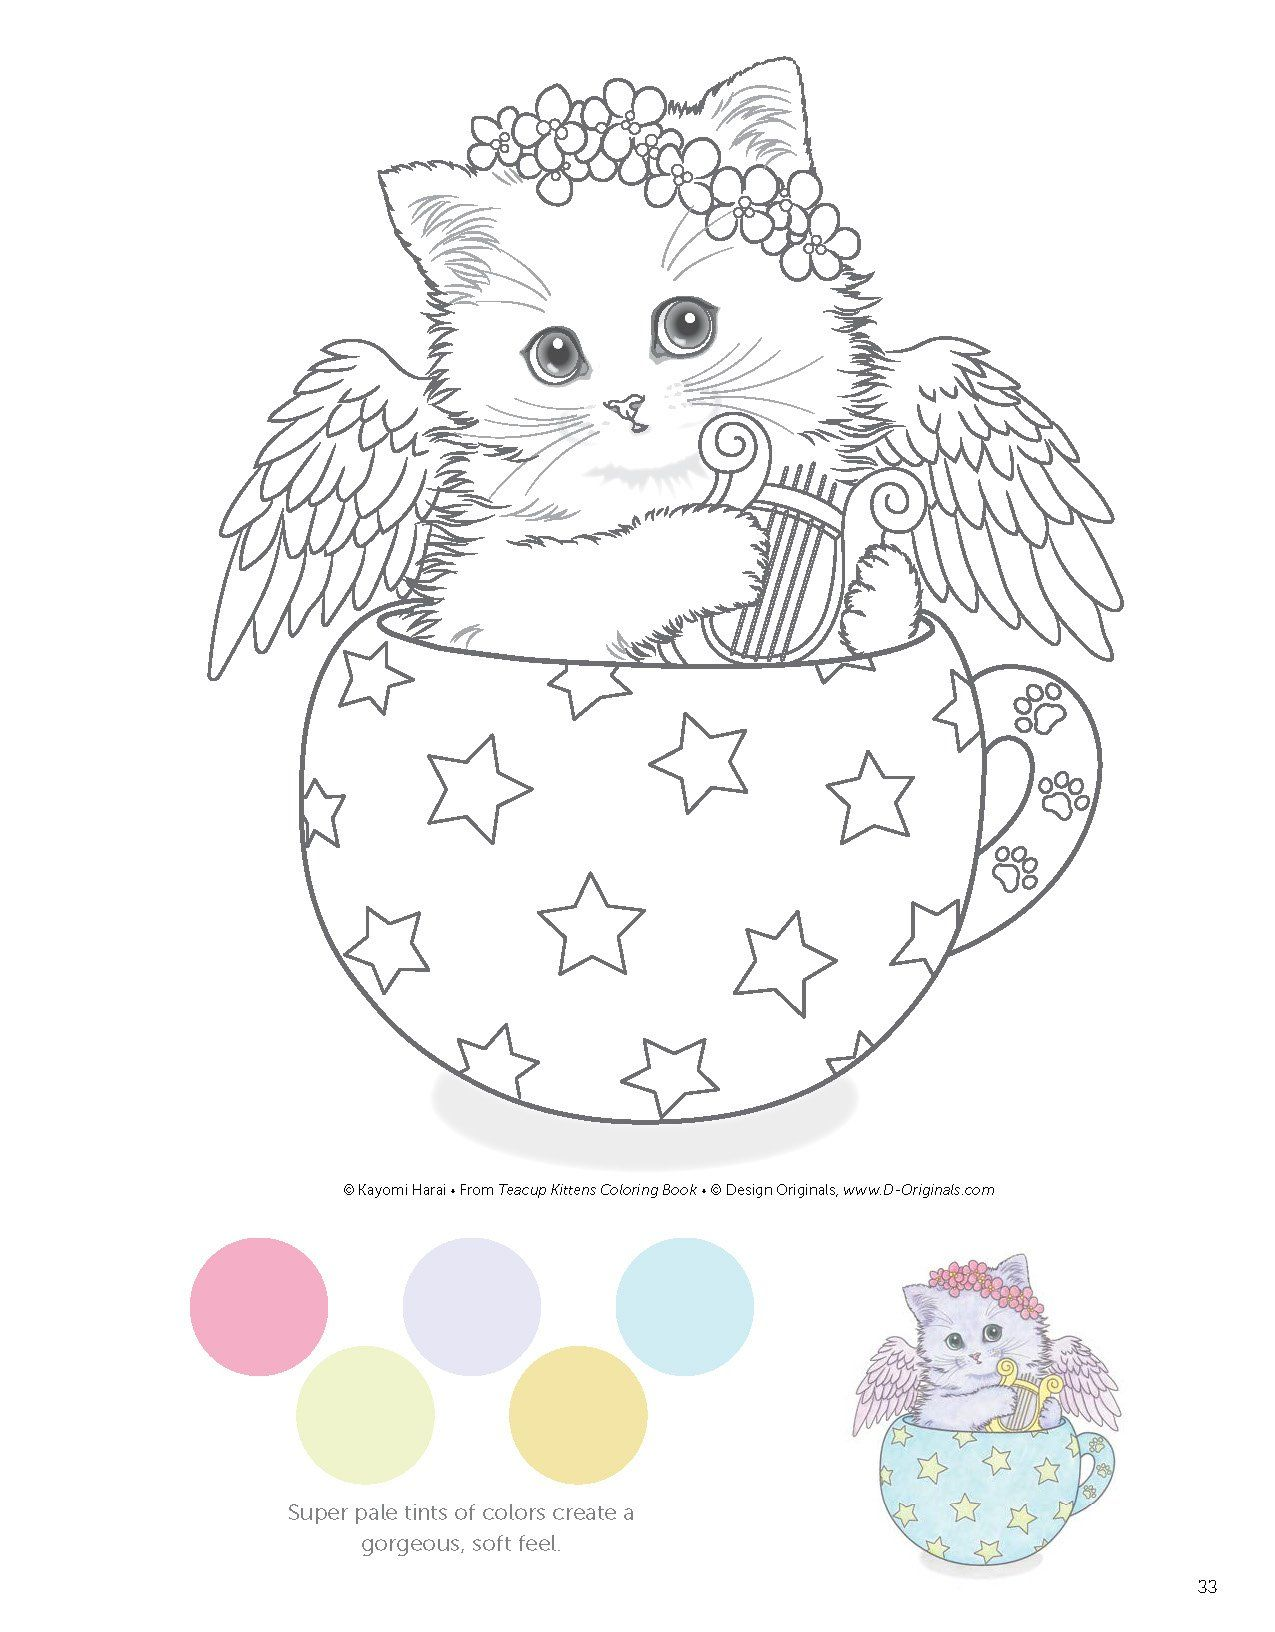 Teacup Kittens Coloring Book Kayomi Harai 9781497202269 Amazon Com Books Kitten Coloring Book Kittens Coloring Coloring Books